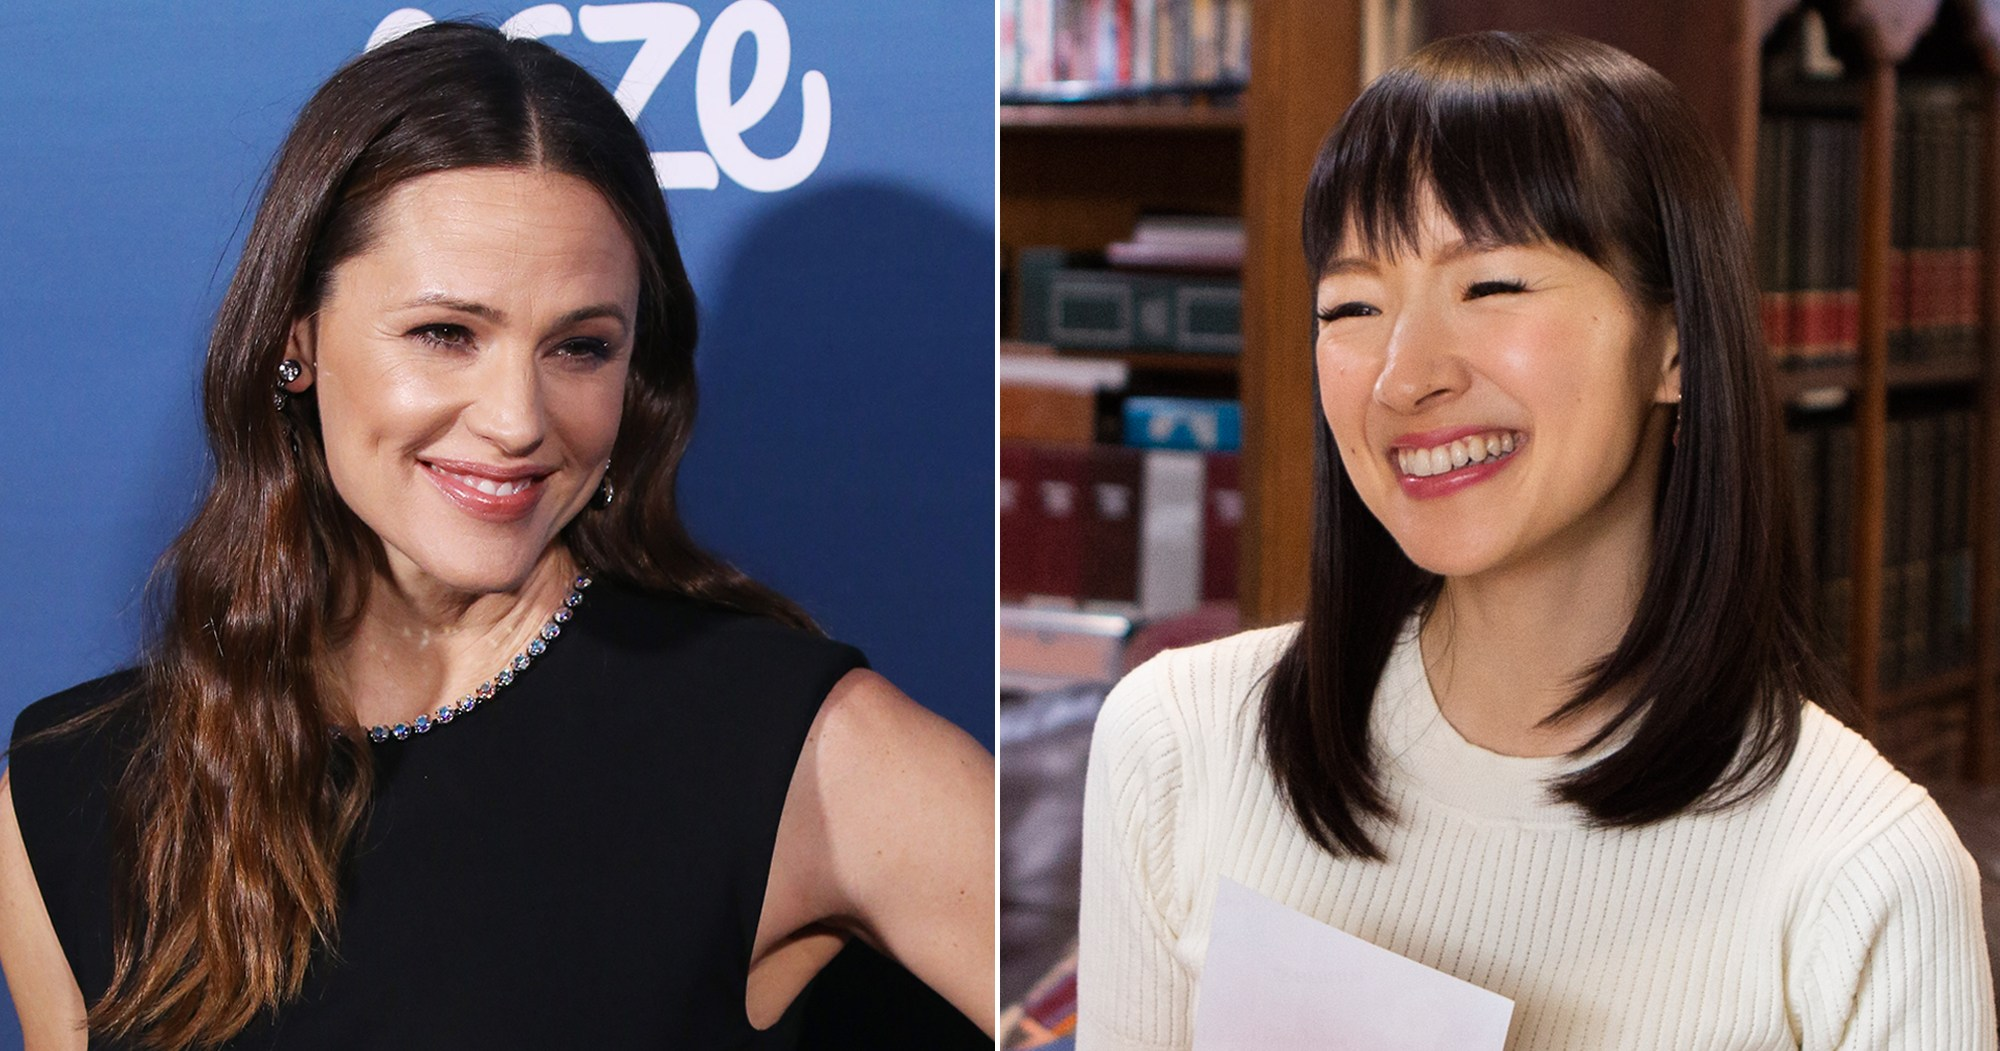 Jennifer Garner Takes a Cue From Marie Kondo and Hilariously Tidies Up Her Junk Drawer